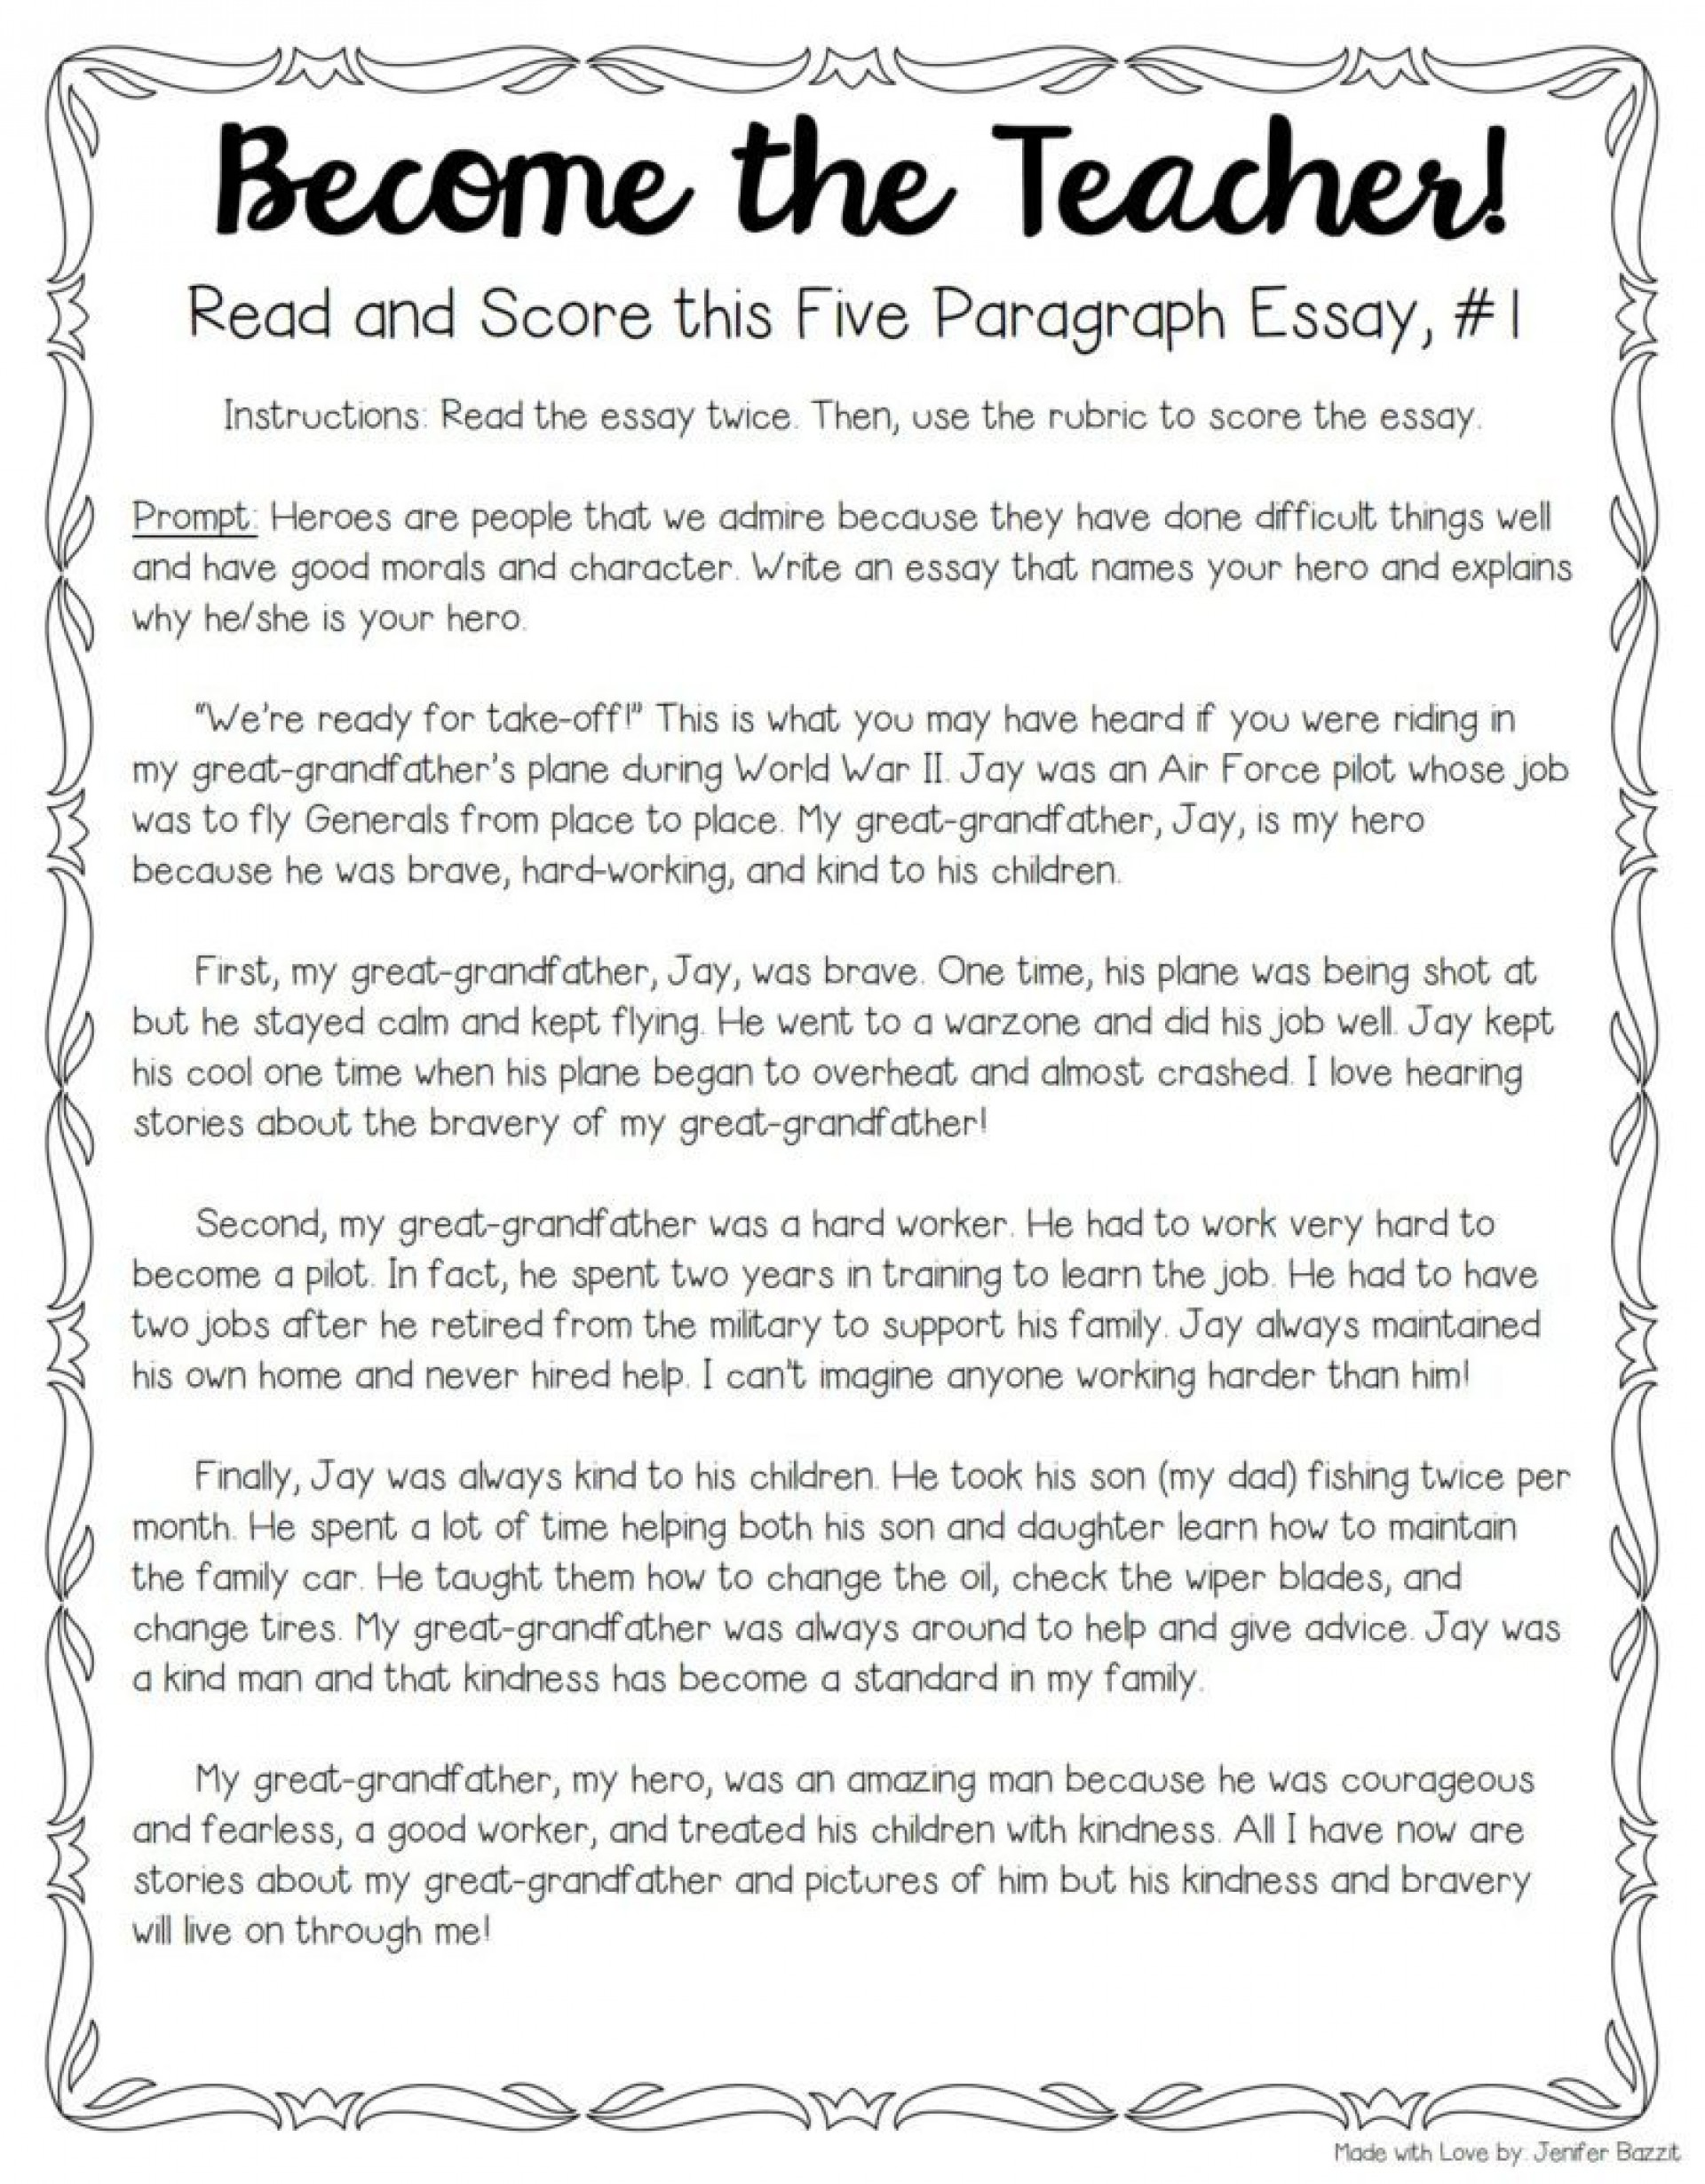 002 Essay Example How Many Paragraphs Are In Five Paragraph Full Formidable A Argumentative Narrative 1920